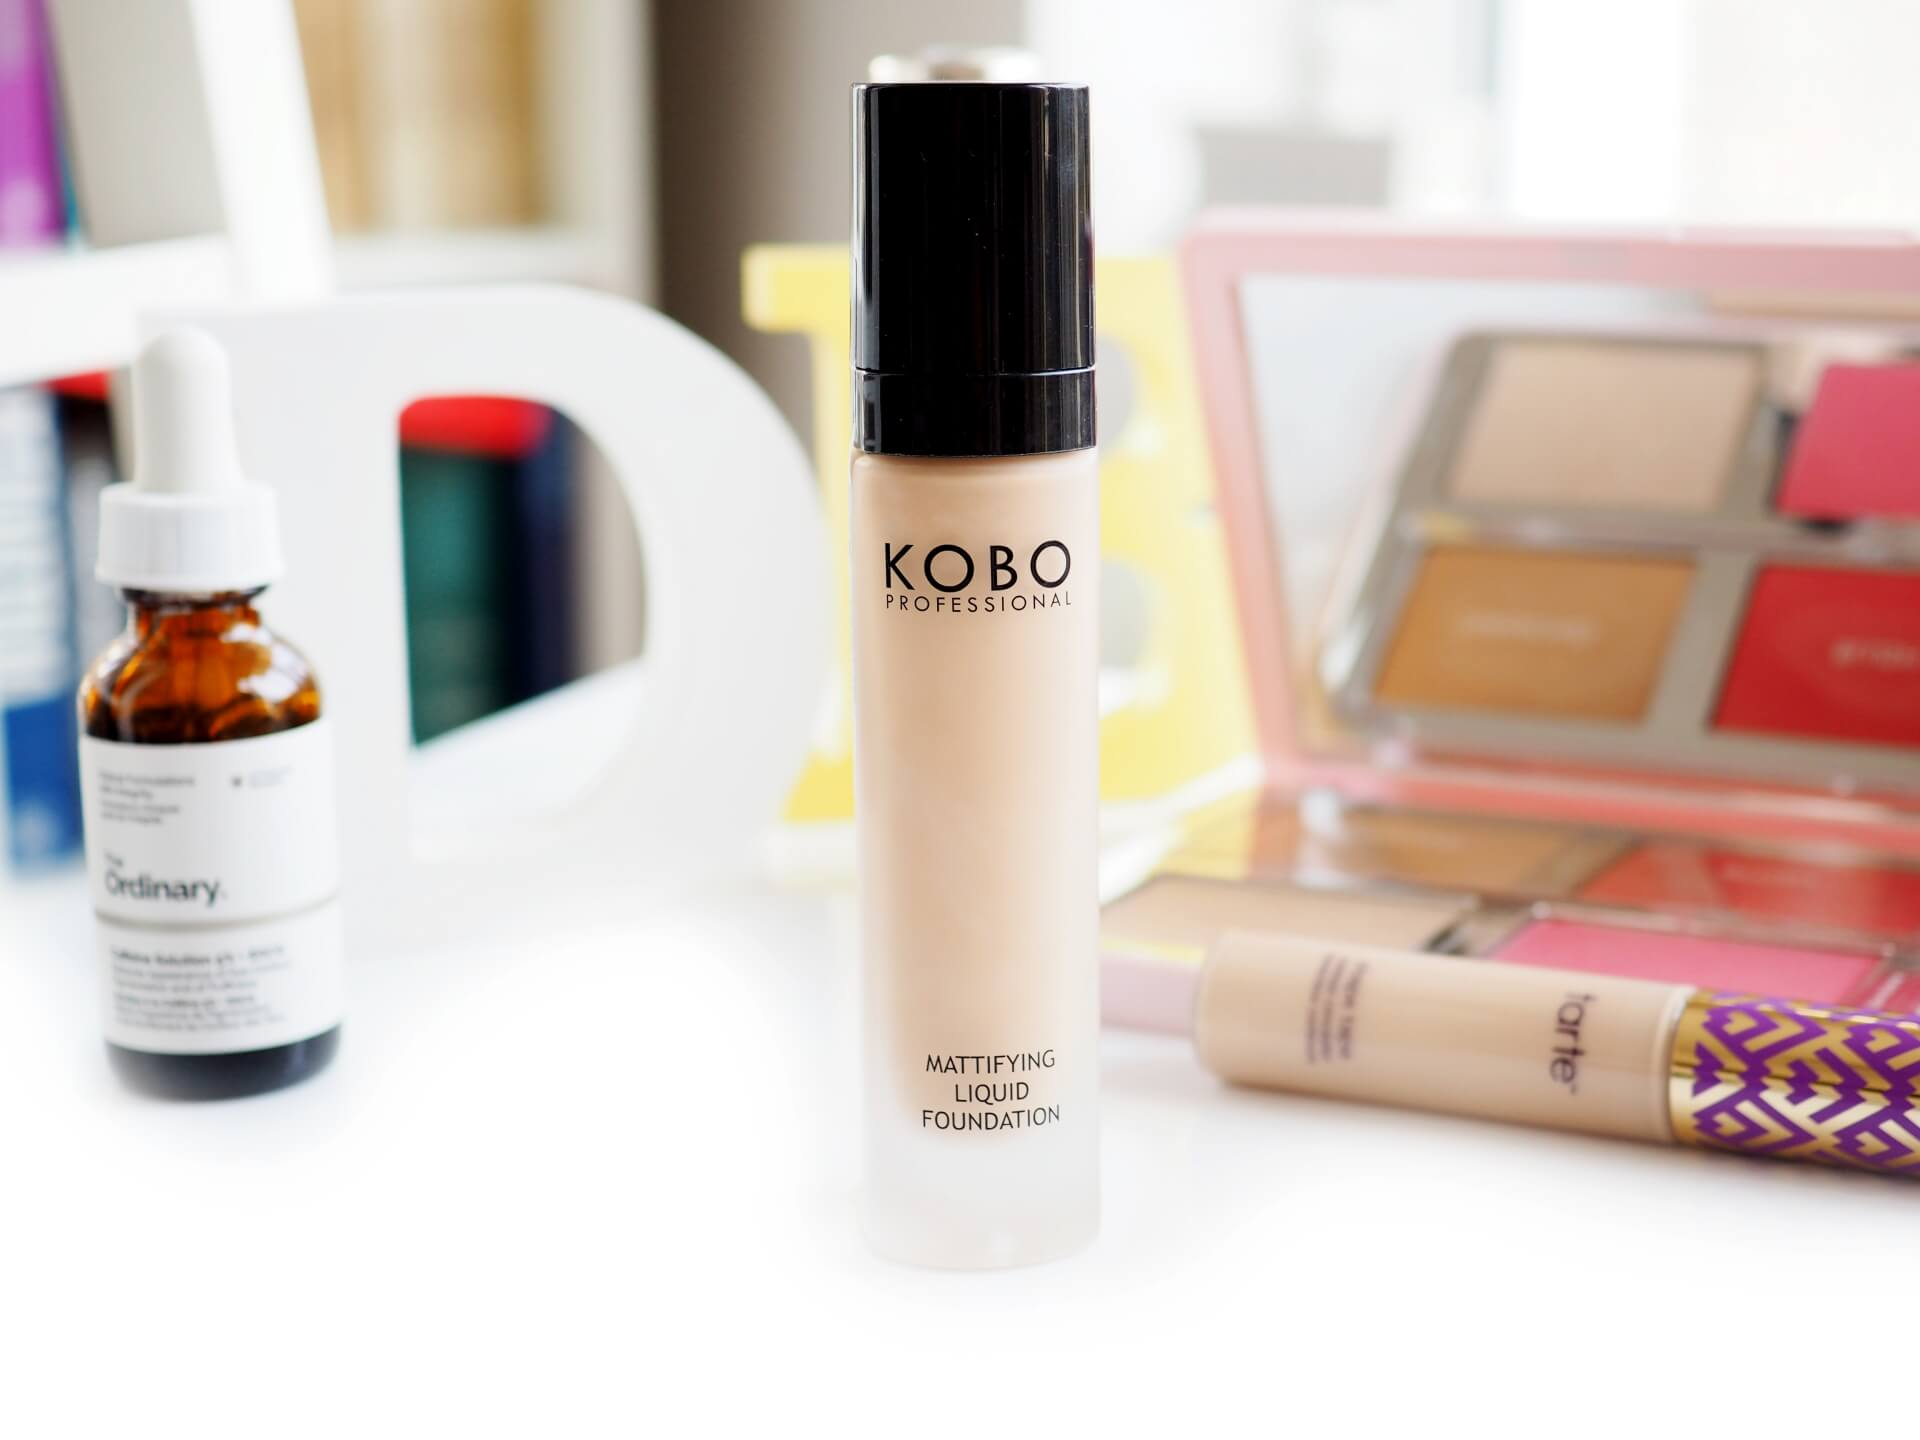 Kobo Mattifying Liquid Foundation